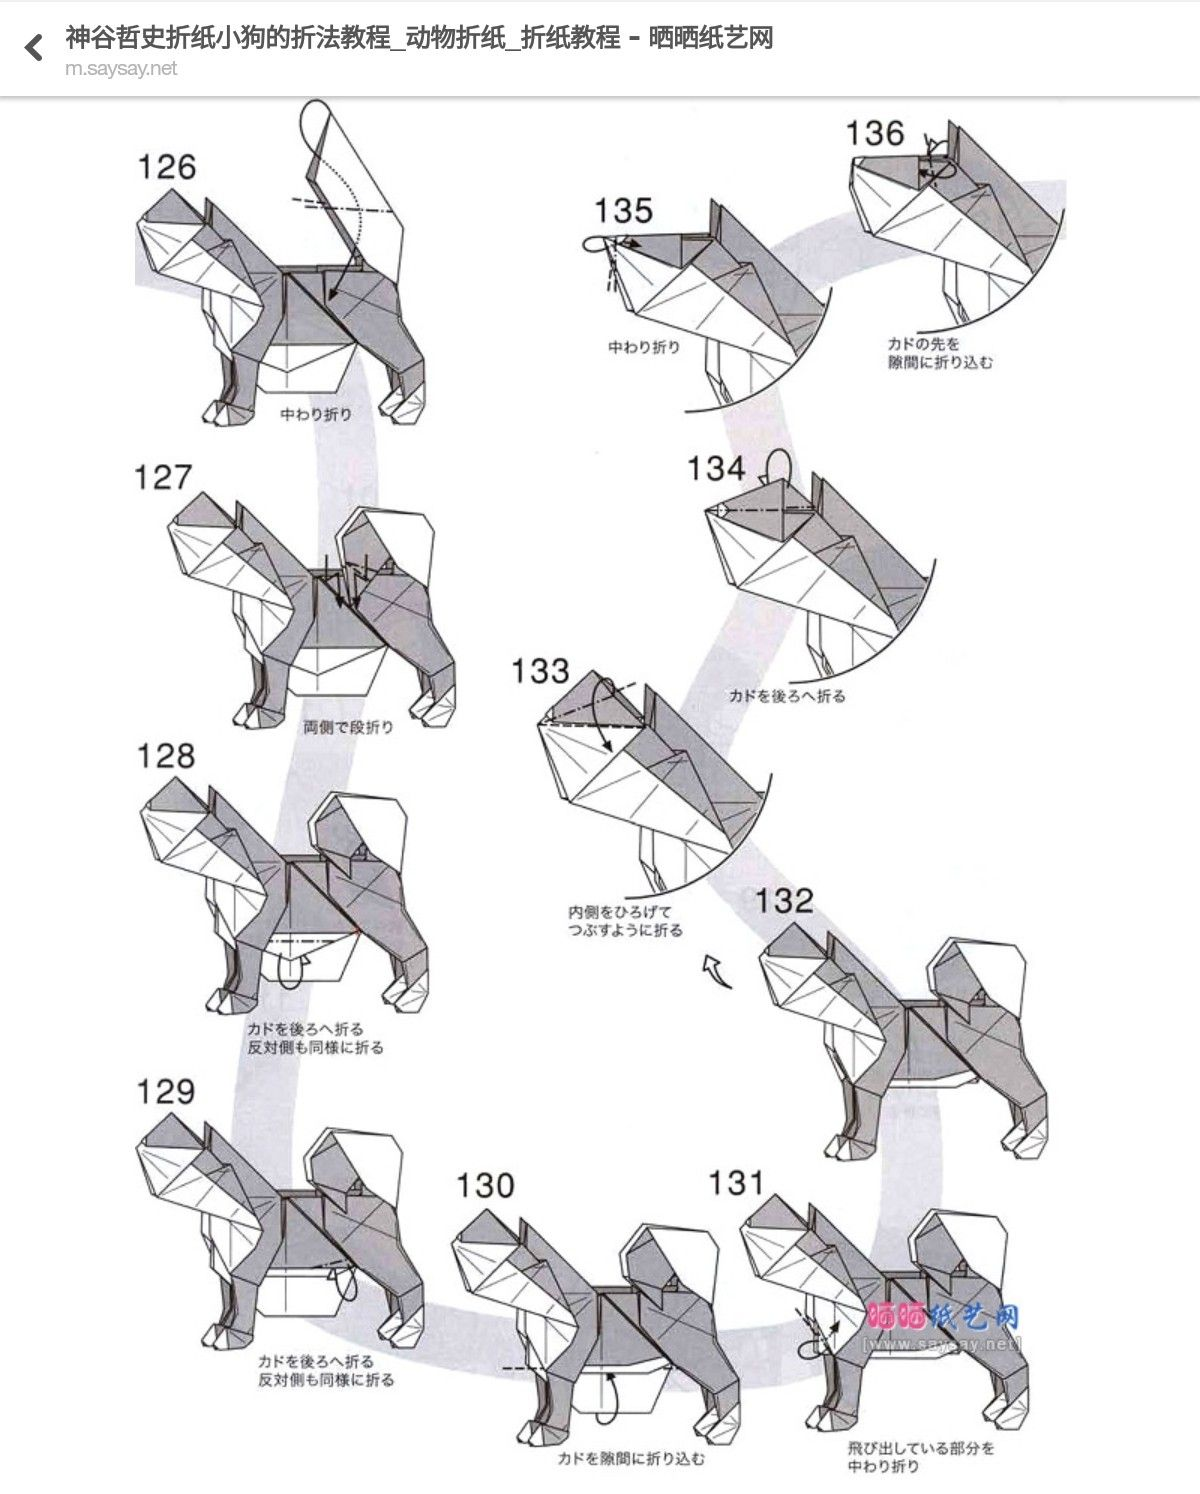 Pin By Cristina Rizea On Origami Instruction Pinterest Hard Diagram Instructions